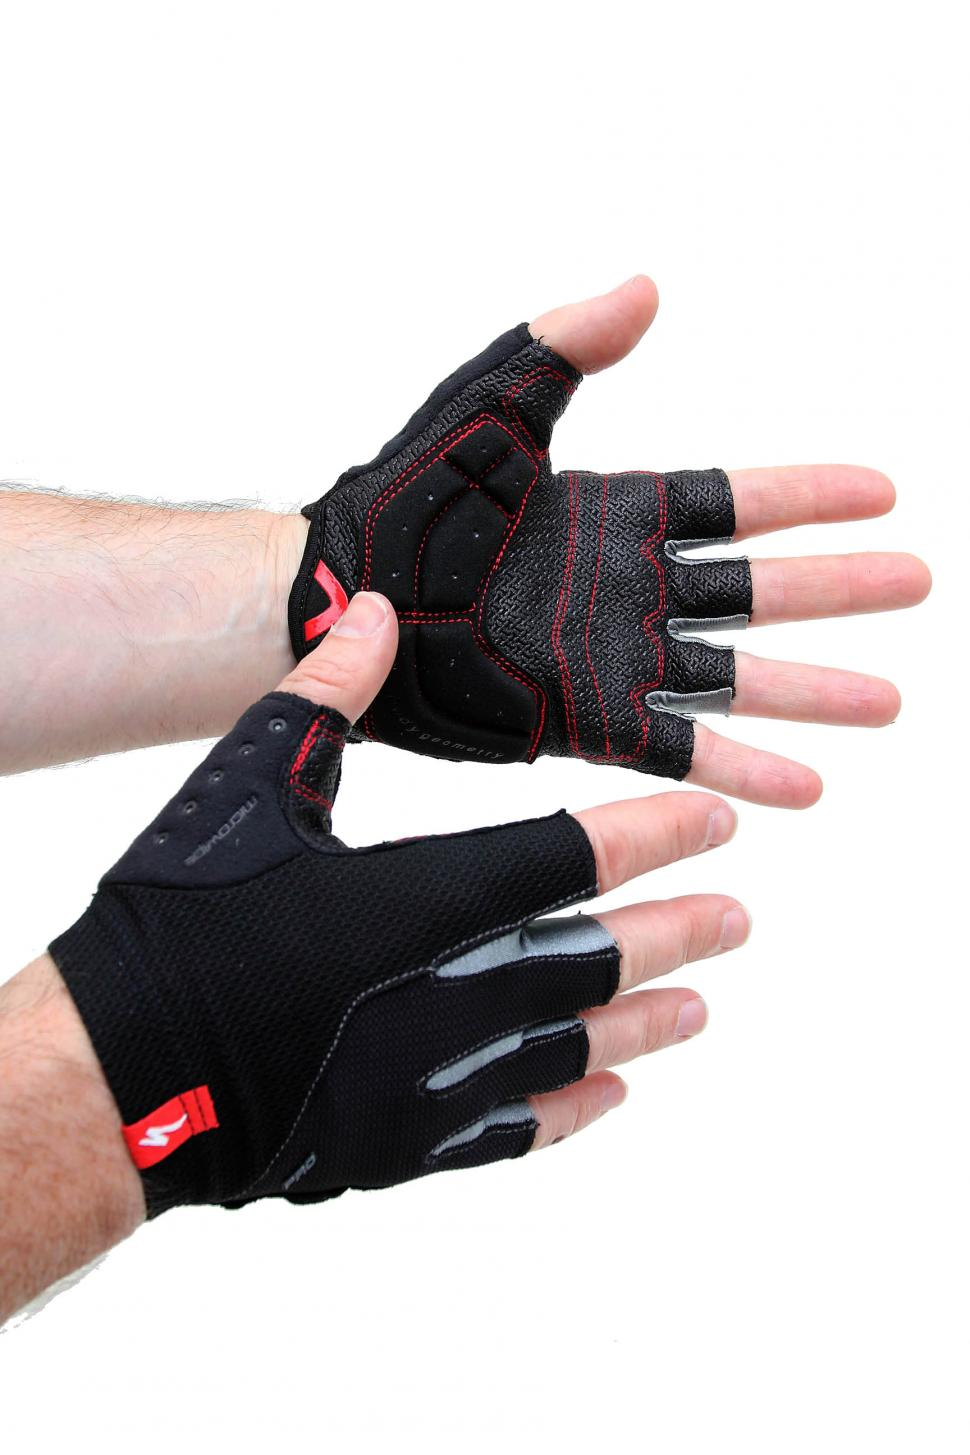 Specialized BG Pro mitts